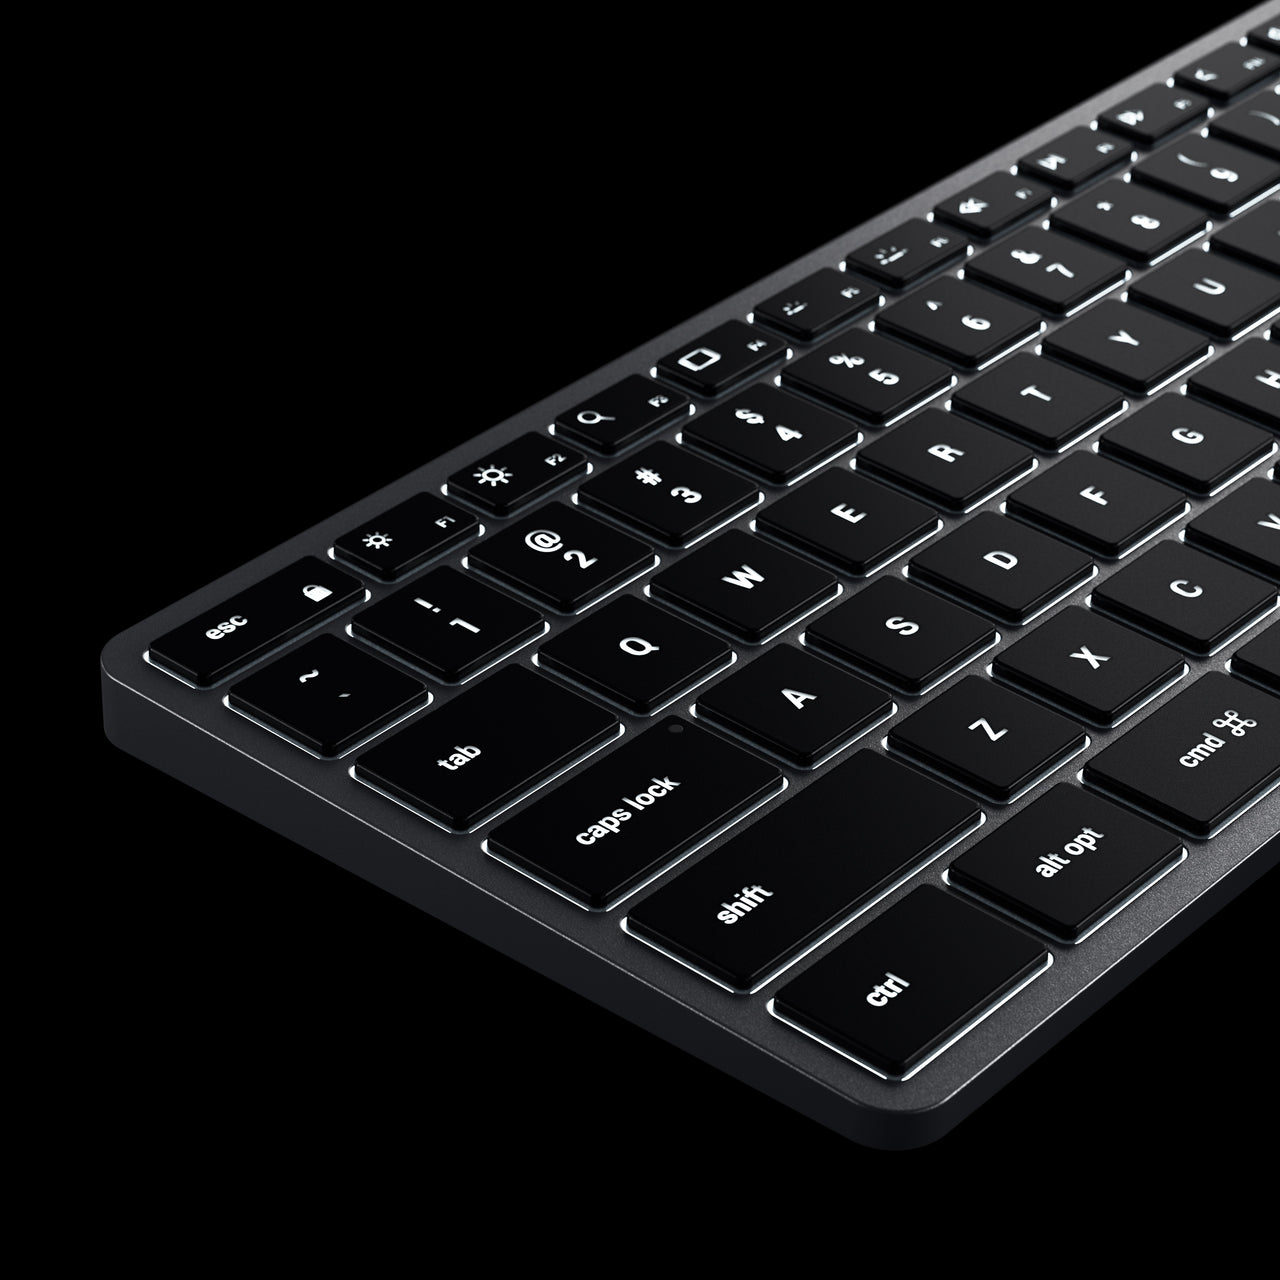 Slim X3 Bluetooth Backlit Keyboard